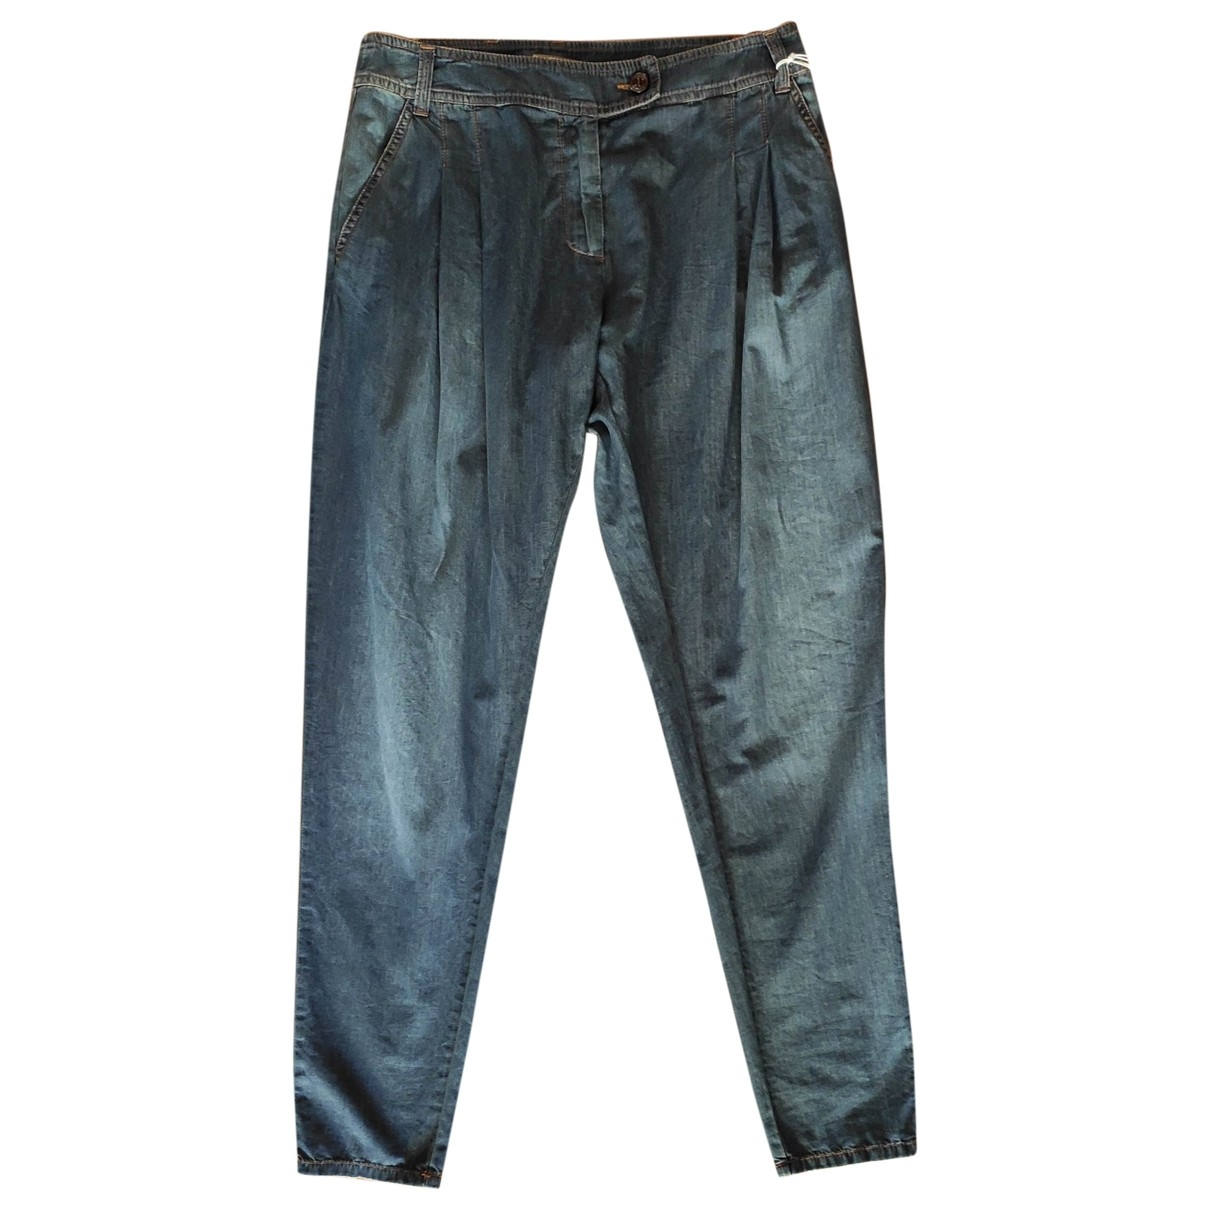 Galliano \N Blue Cotton Jeans for Women 25 US